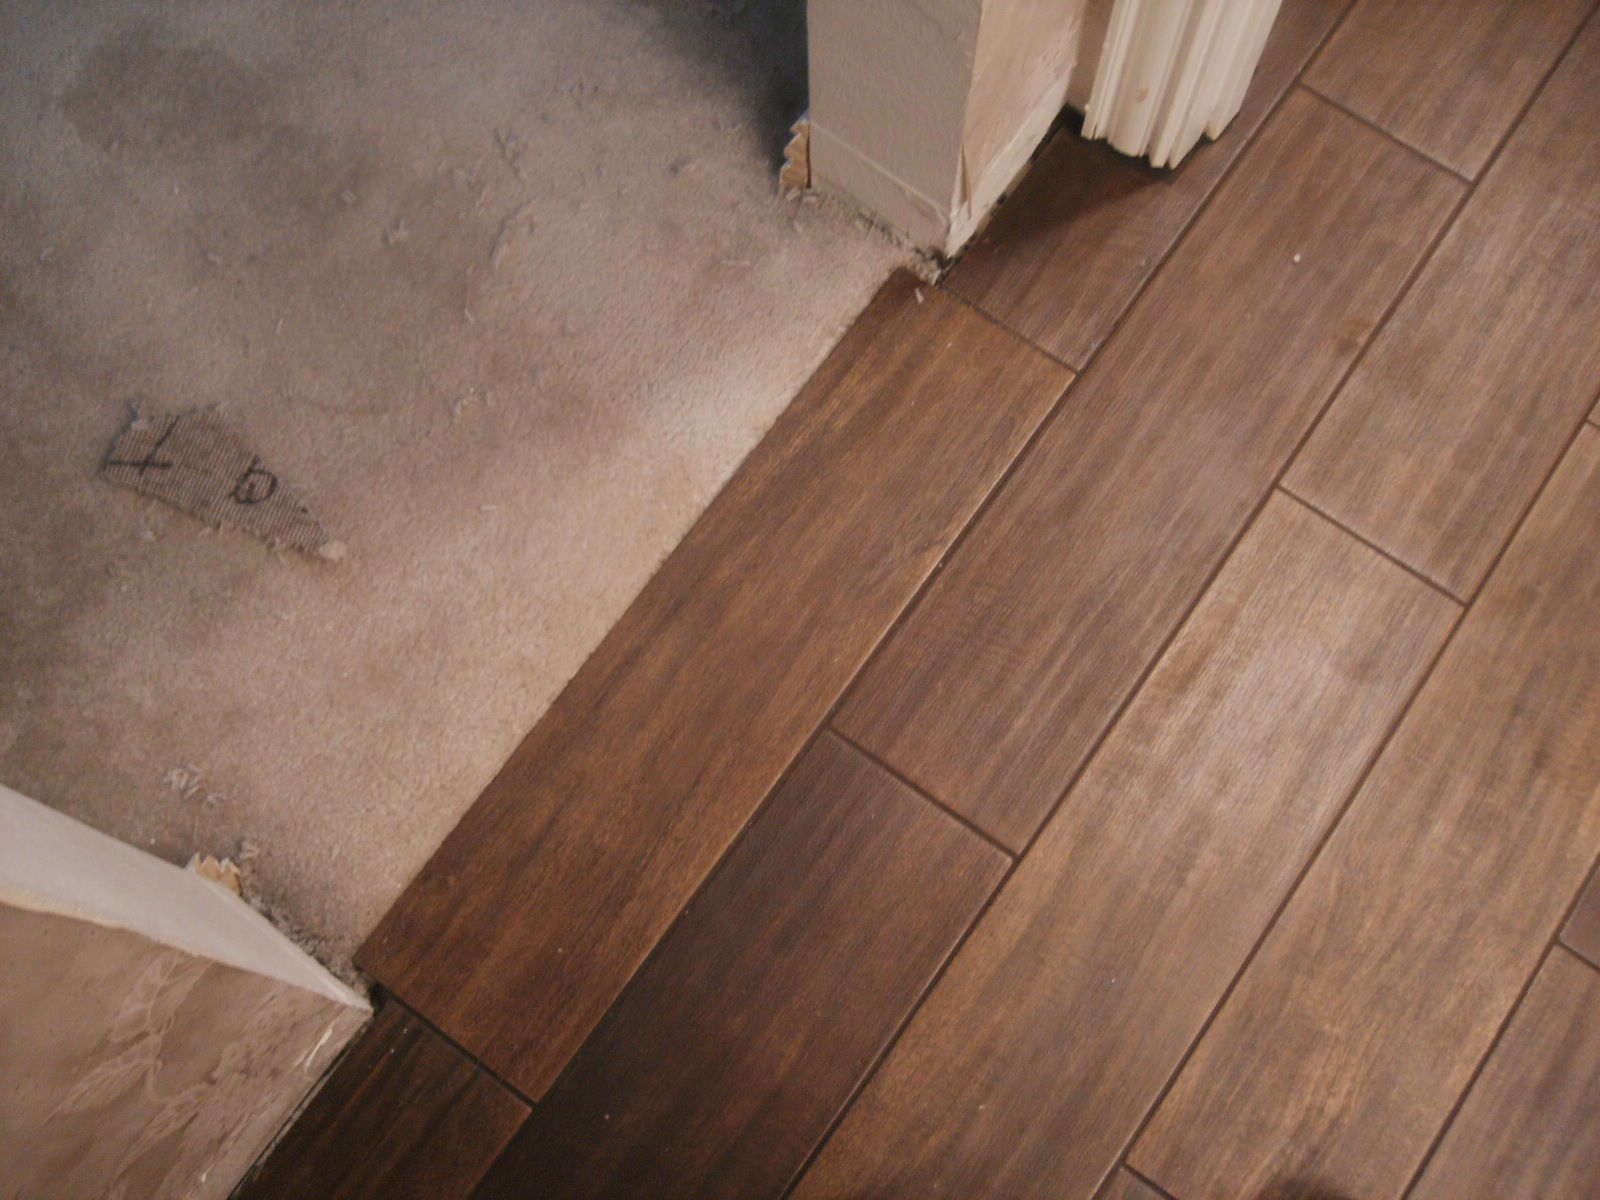 Tile Flooring That Looks Like Wood Tile : Tile Flooring That Looks . Part 48